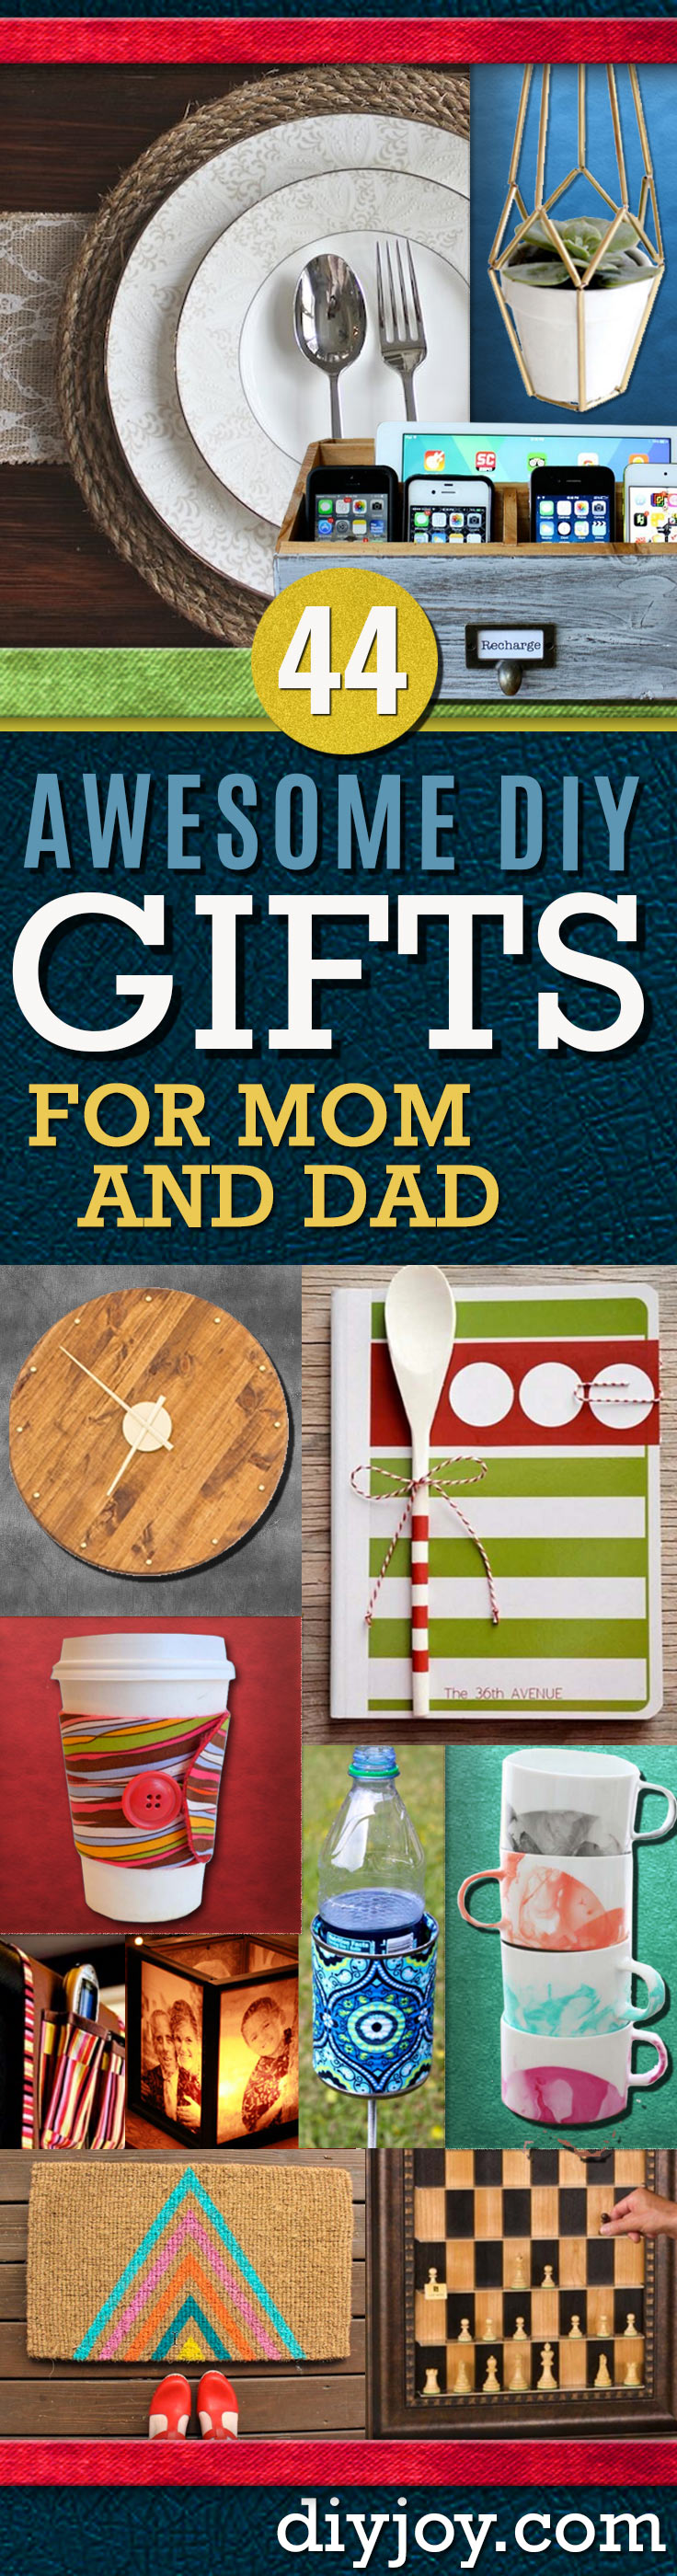 Easy Craft Ideas For Christmas Gifts Part - 47: DIY Gifts For Mom And Dad - Homemade Christmas Gift Ideas For Your Parents.  Cool